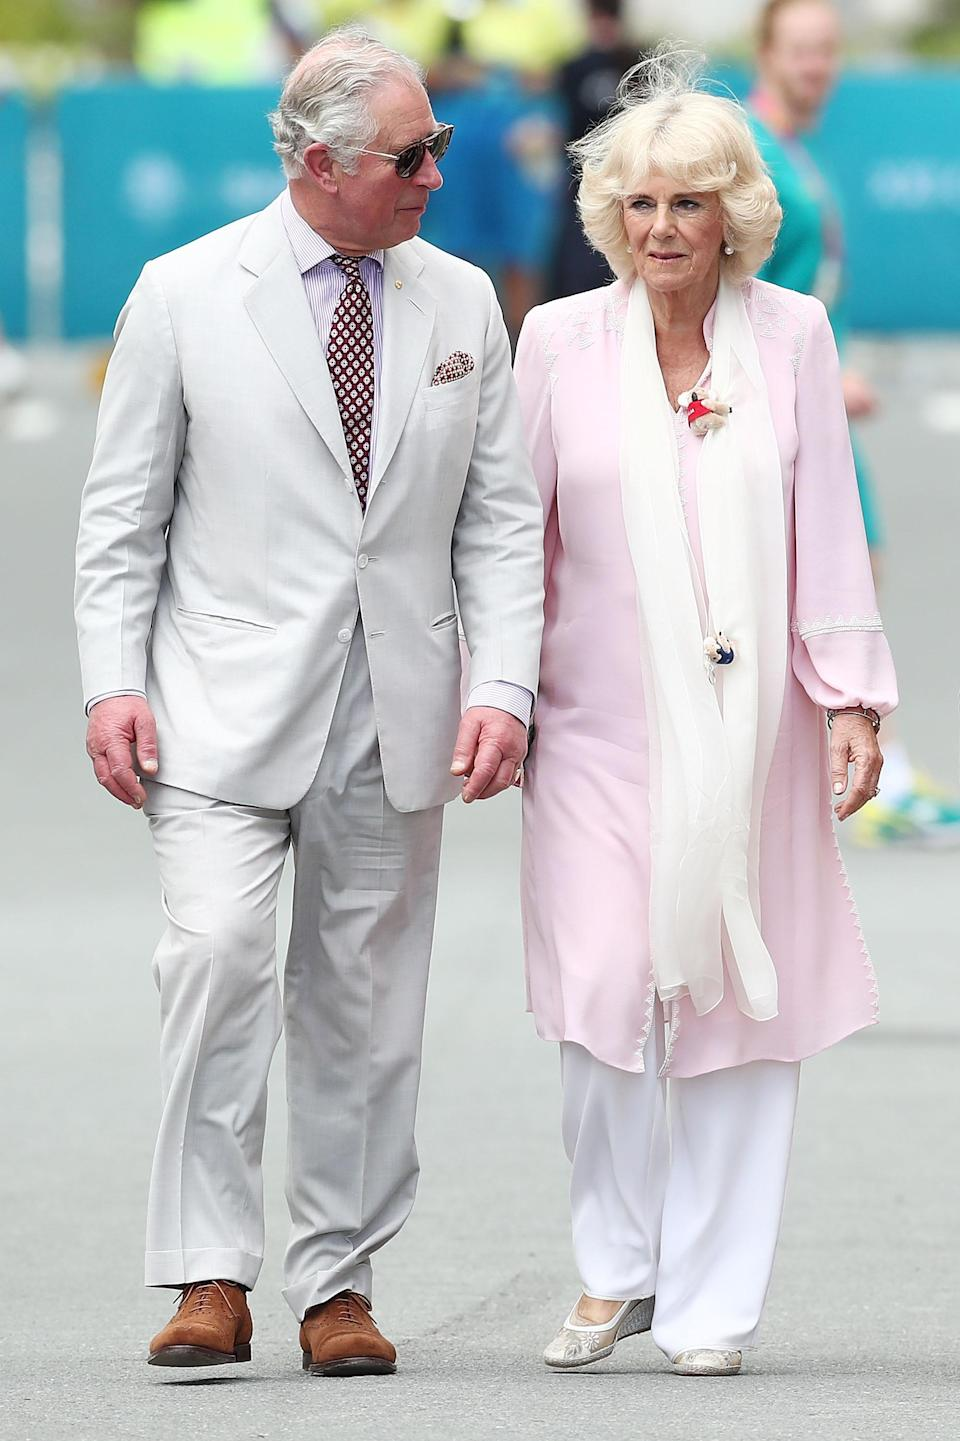 Camilla refused to move into the house with Charles. Photo: Getty